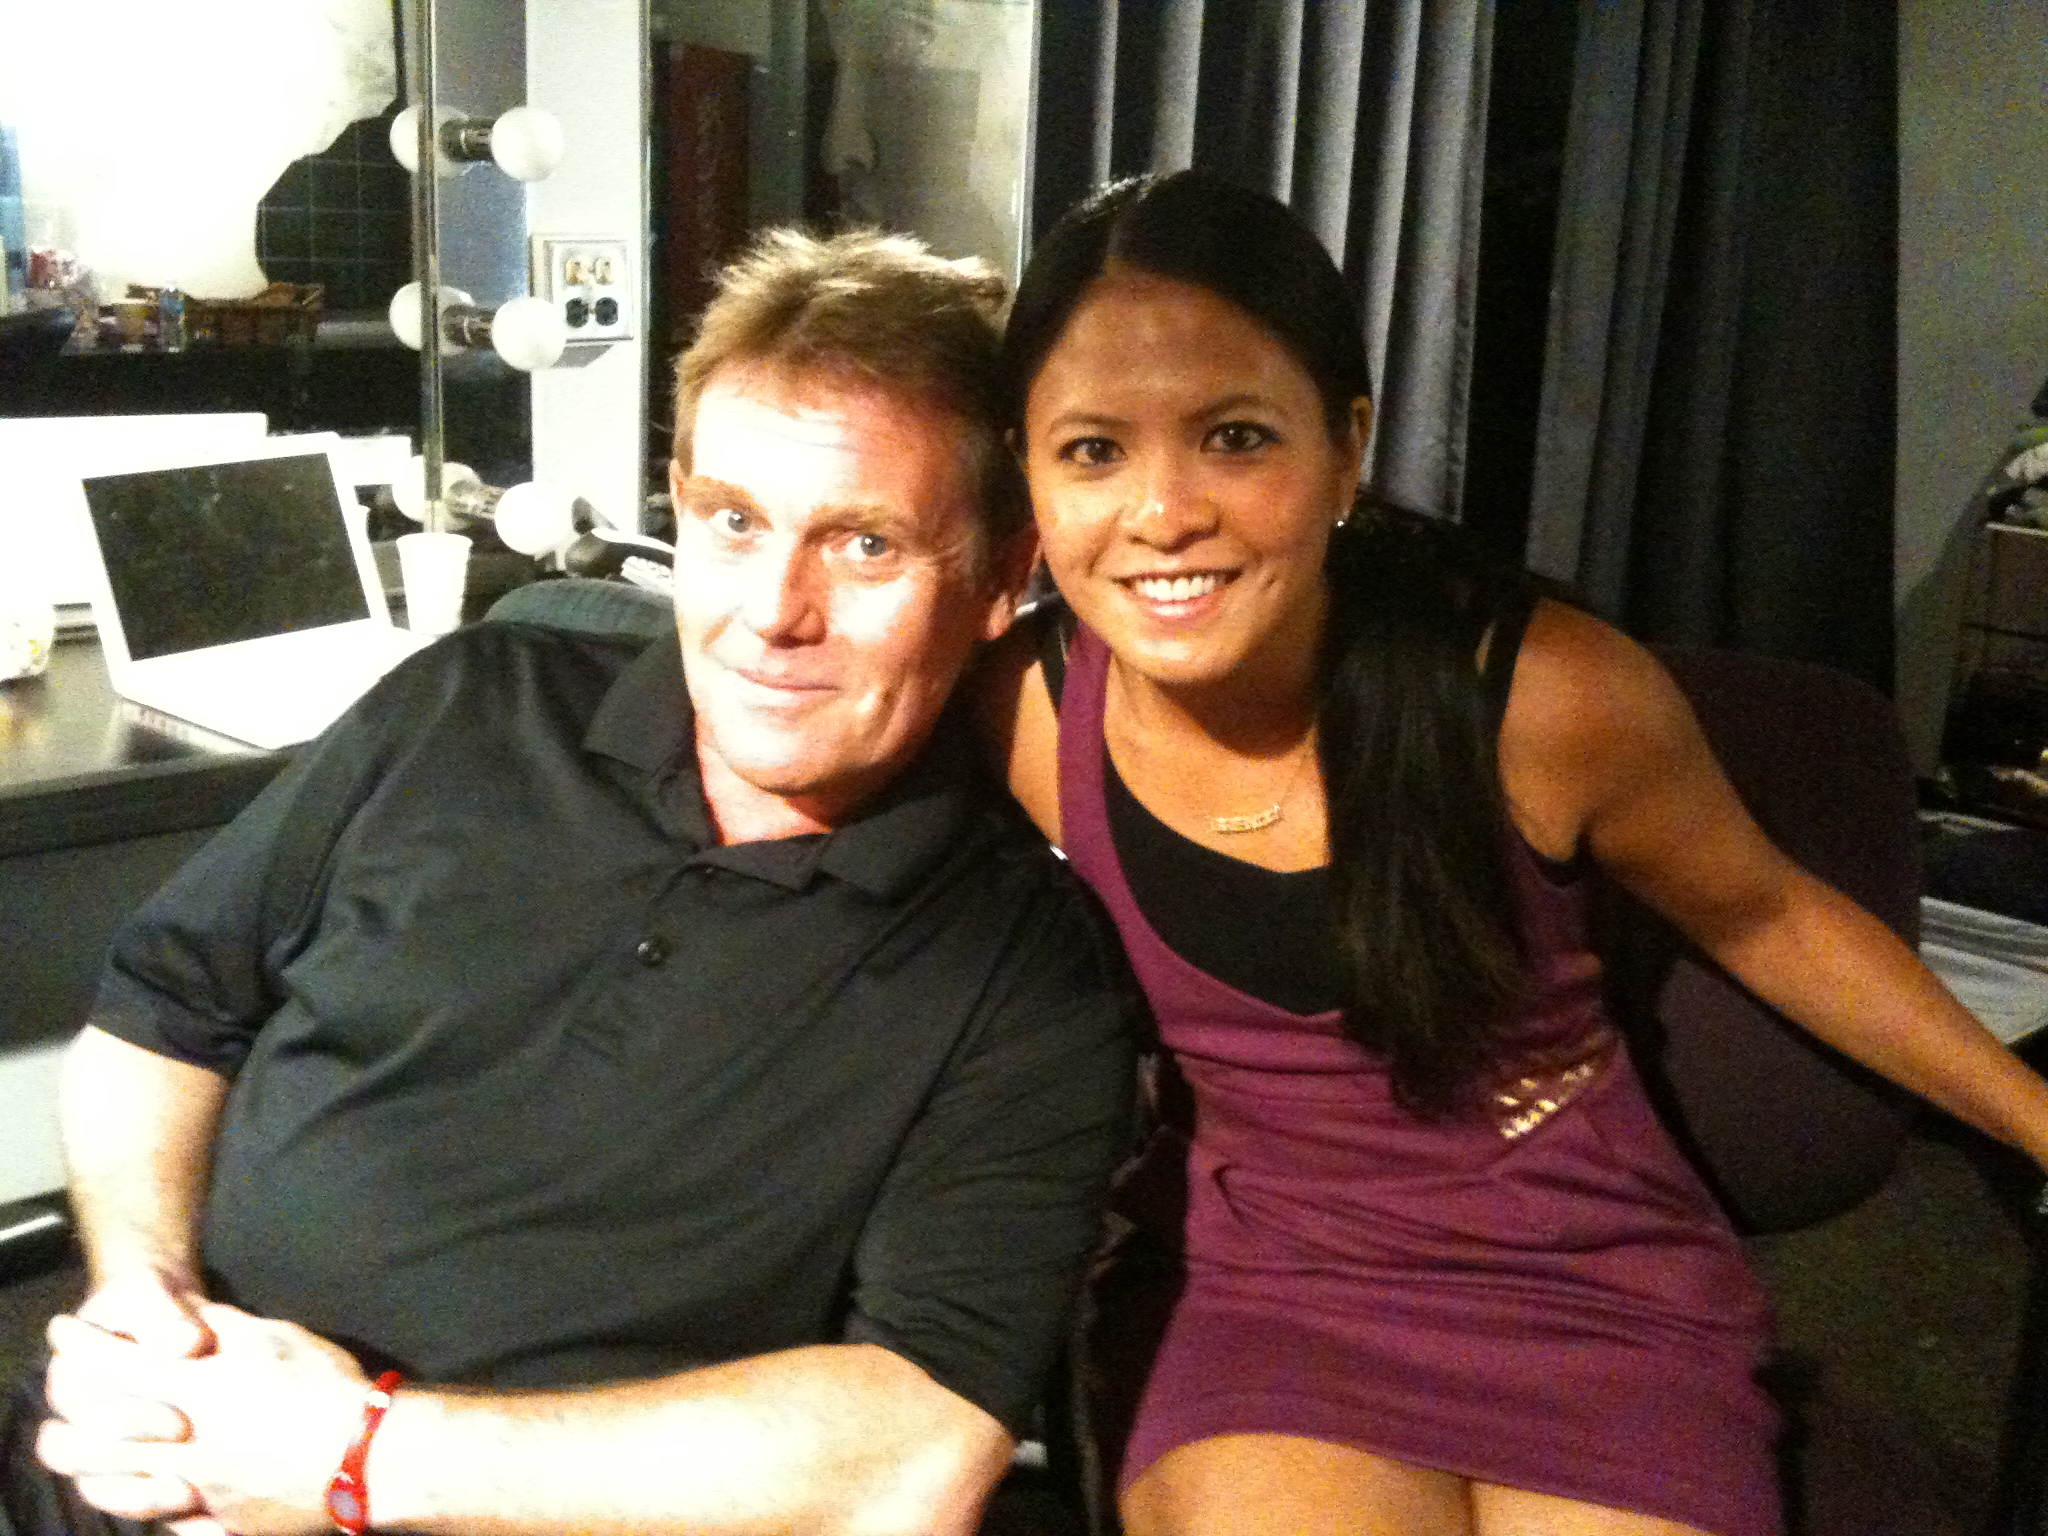 The Inveterate Hybrid: Dave Wakeling of the English Beat